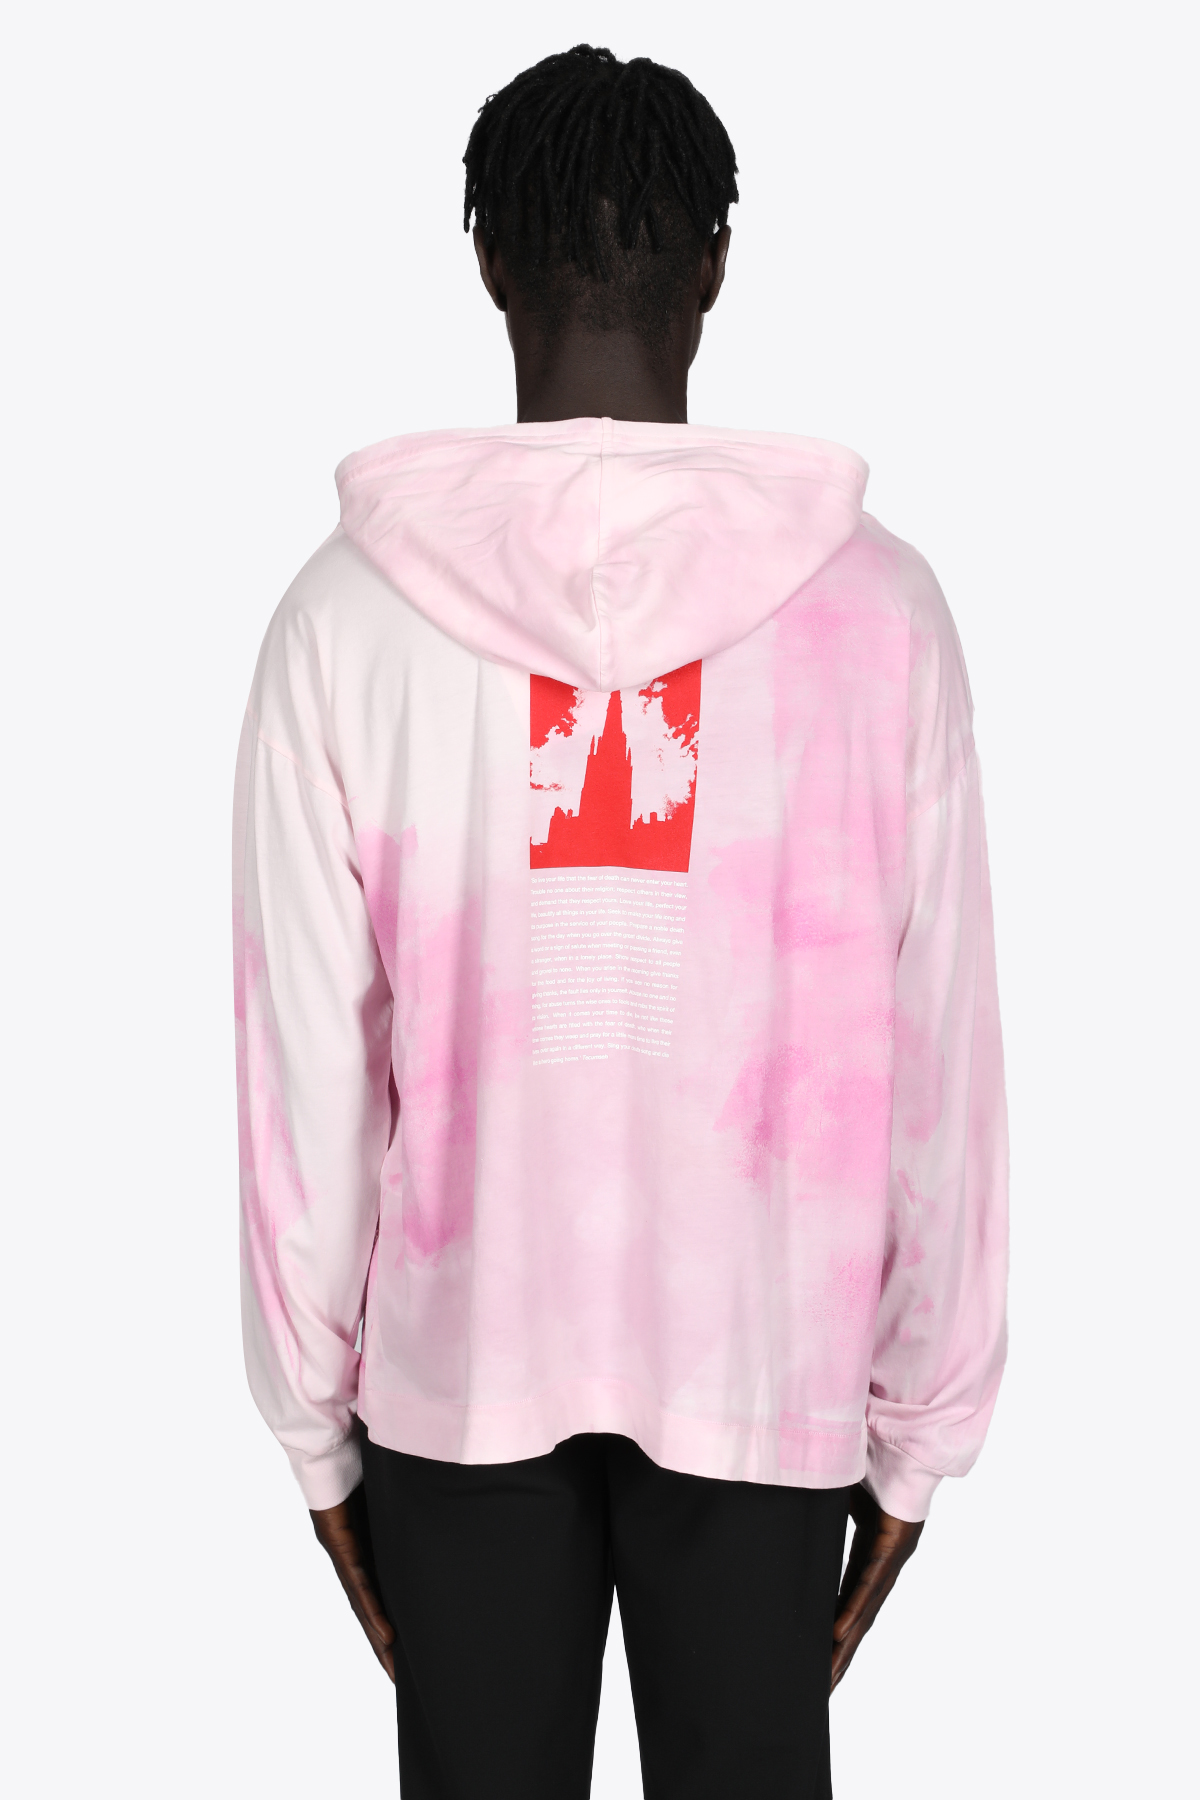 PINK TIE-DYE COTTON HOODED T-SHIRT WITH LONG SLEEVES 1017 ALYX 9SM   8   AAMTS0239FA01 TREATED HOODED T-SHIRT06